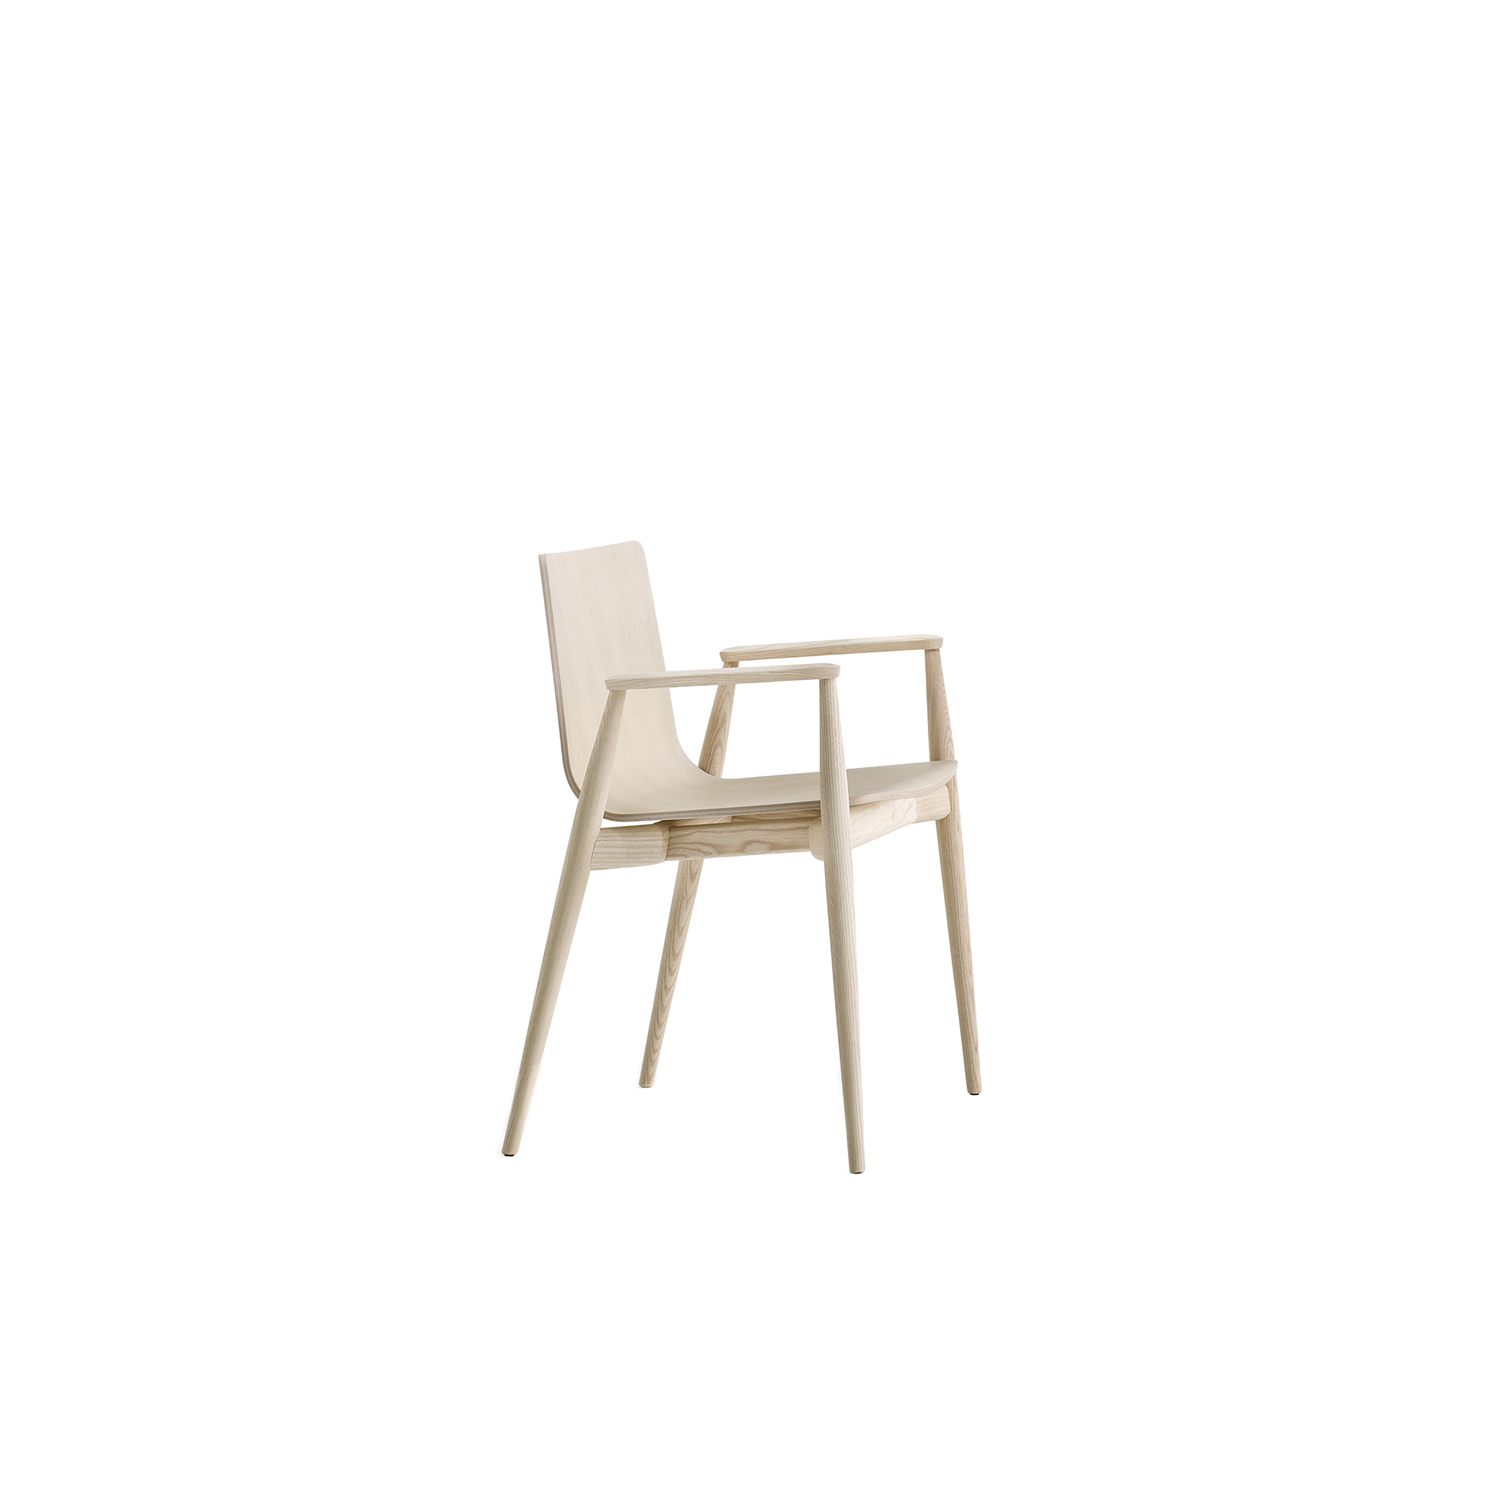 Malmö Armchair - The Malmö armchair was born from an imaginary journey along the sides of a Scandinavian lake. It recalls the experience of a come back home with the cosiness of wood warming up the environment.